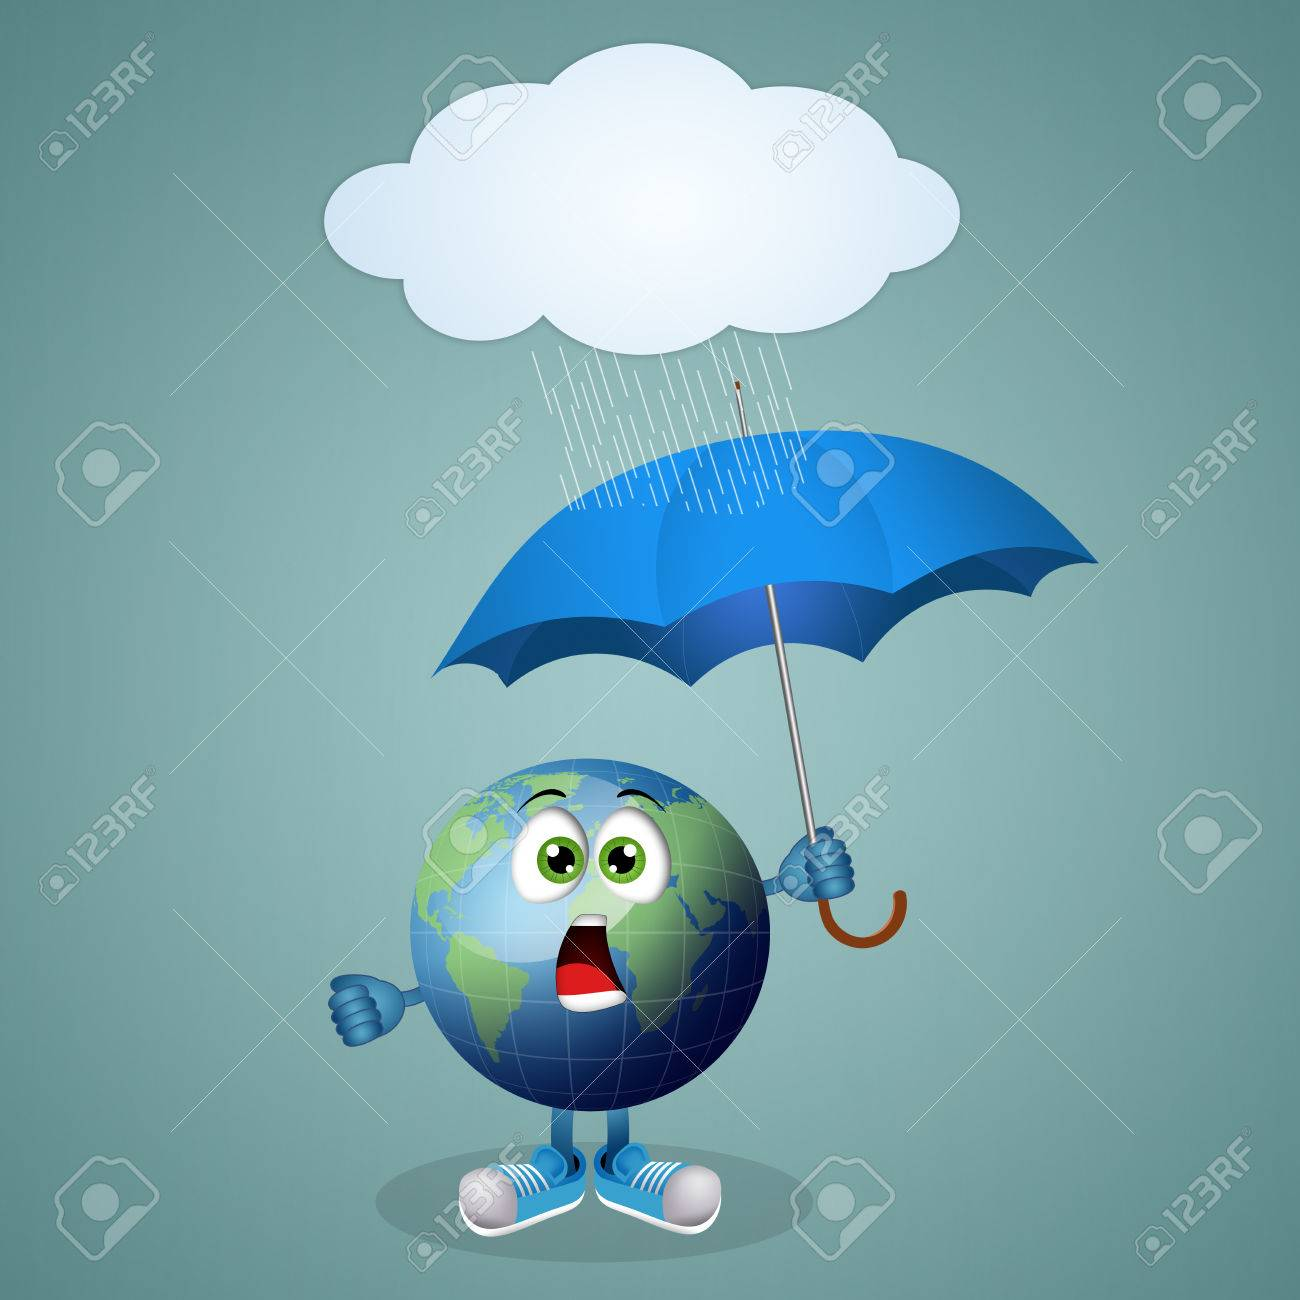 Funny Earth With Umbrella For Rainy Day Stock Photo Picture And